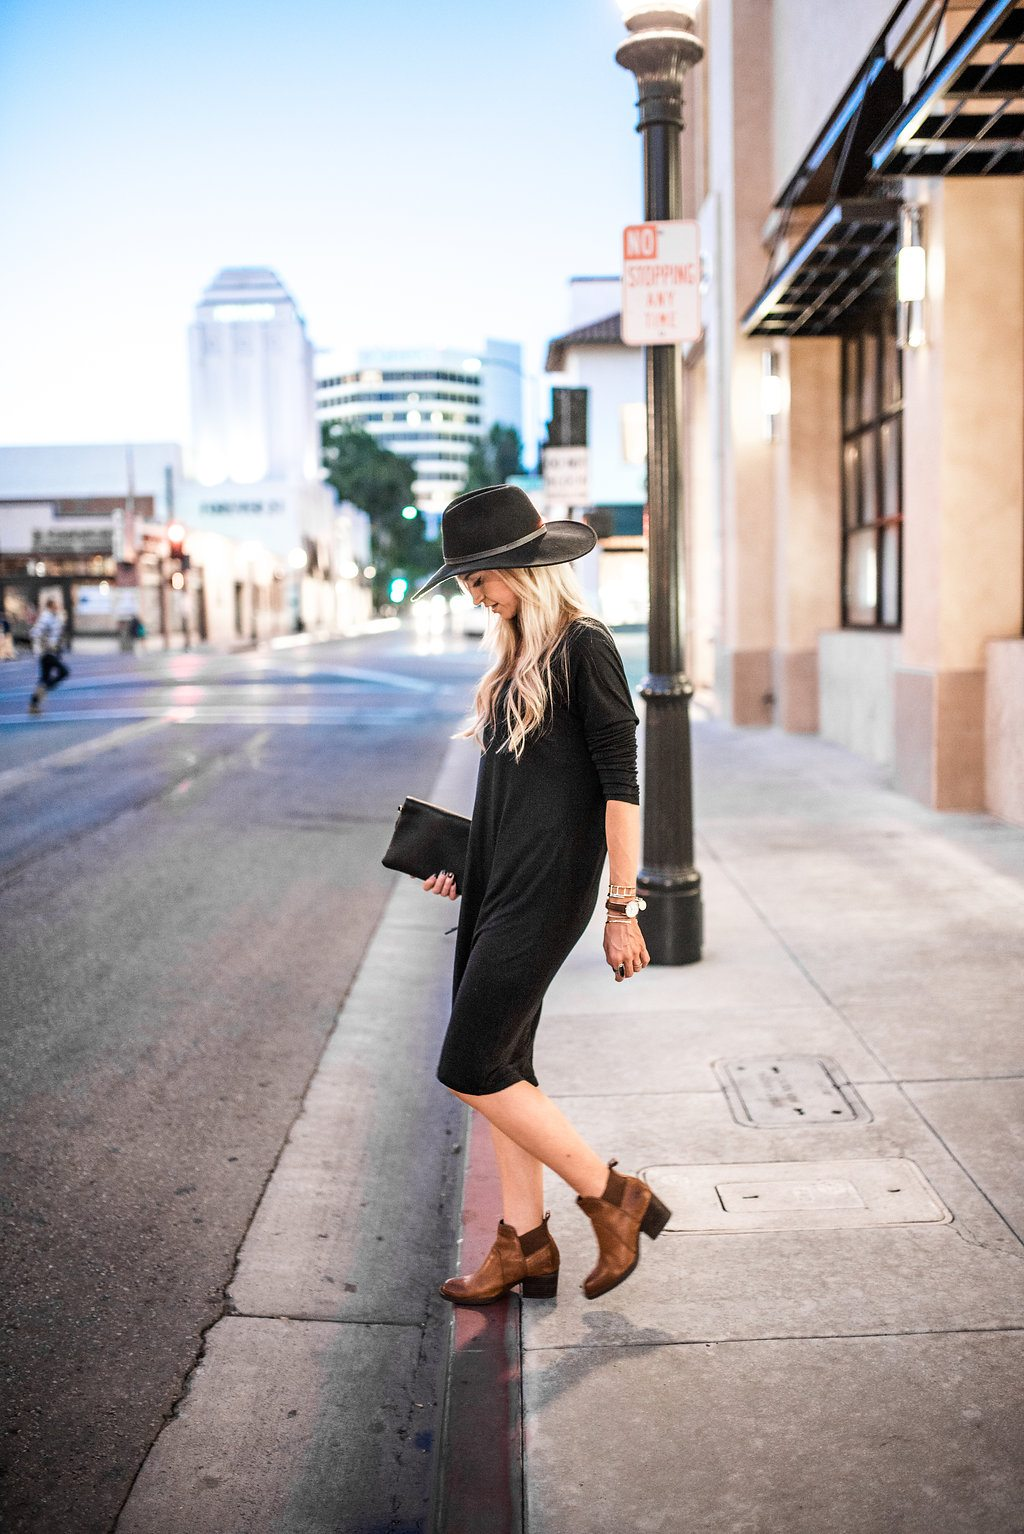 Fall cognac booties for daytime and date night.